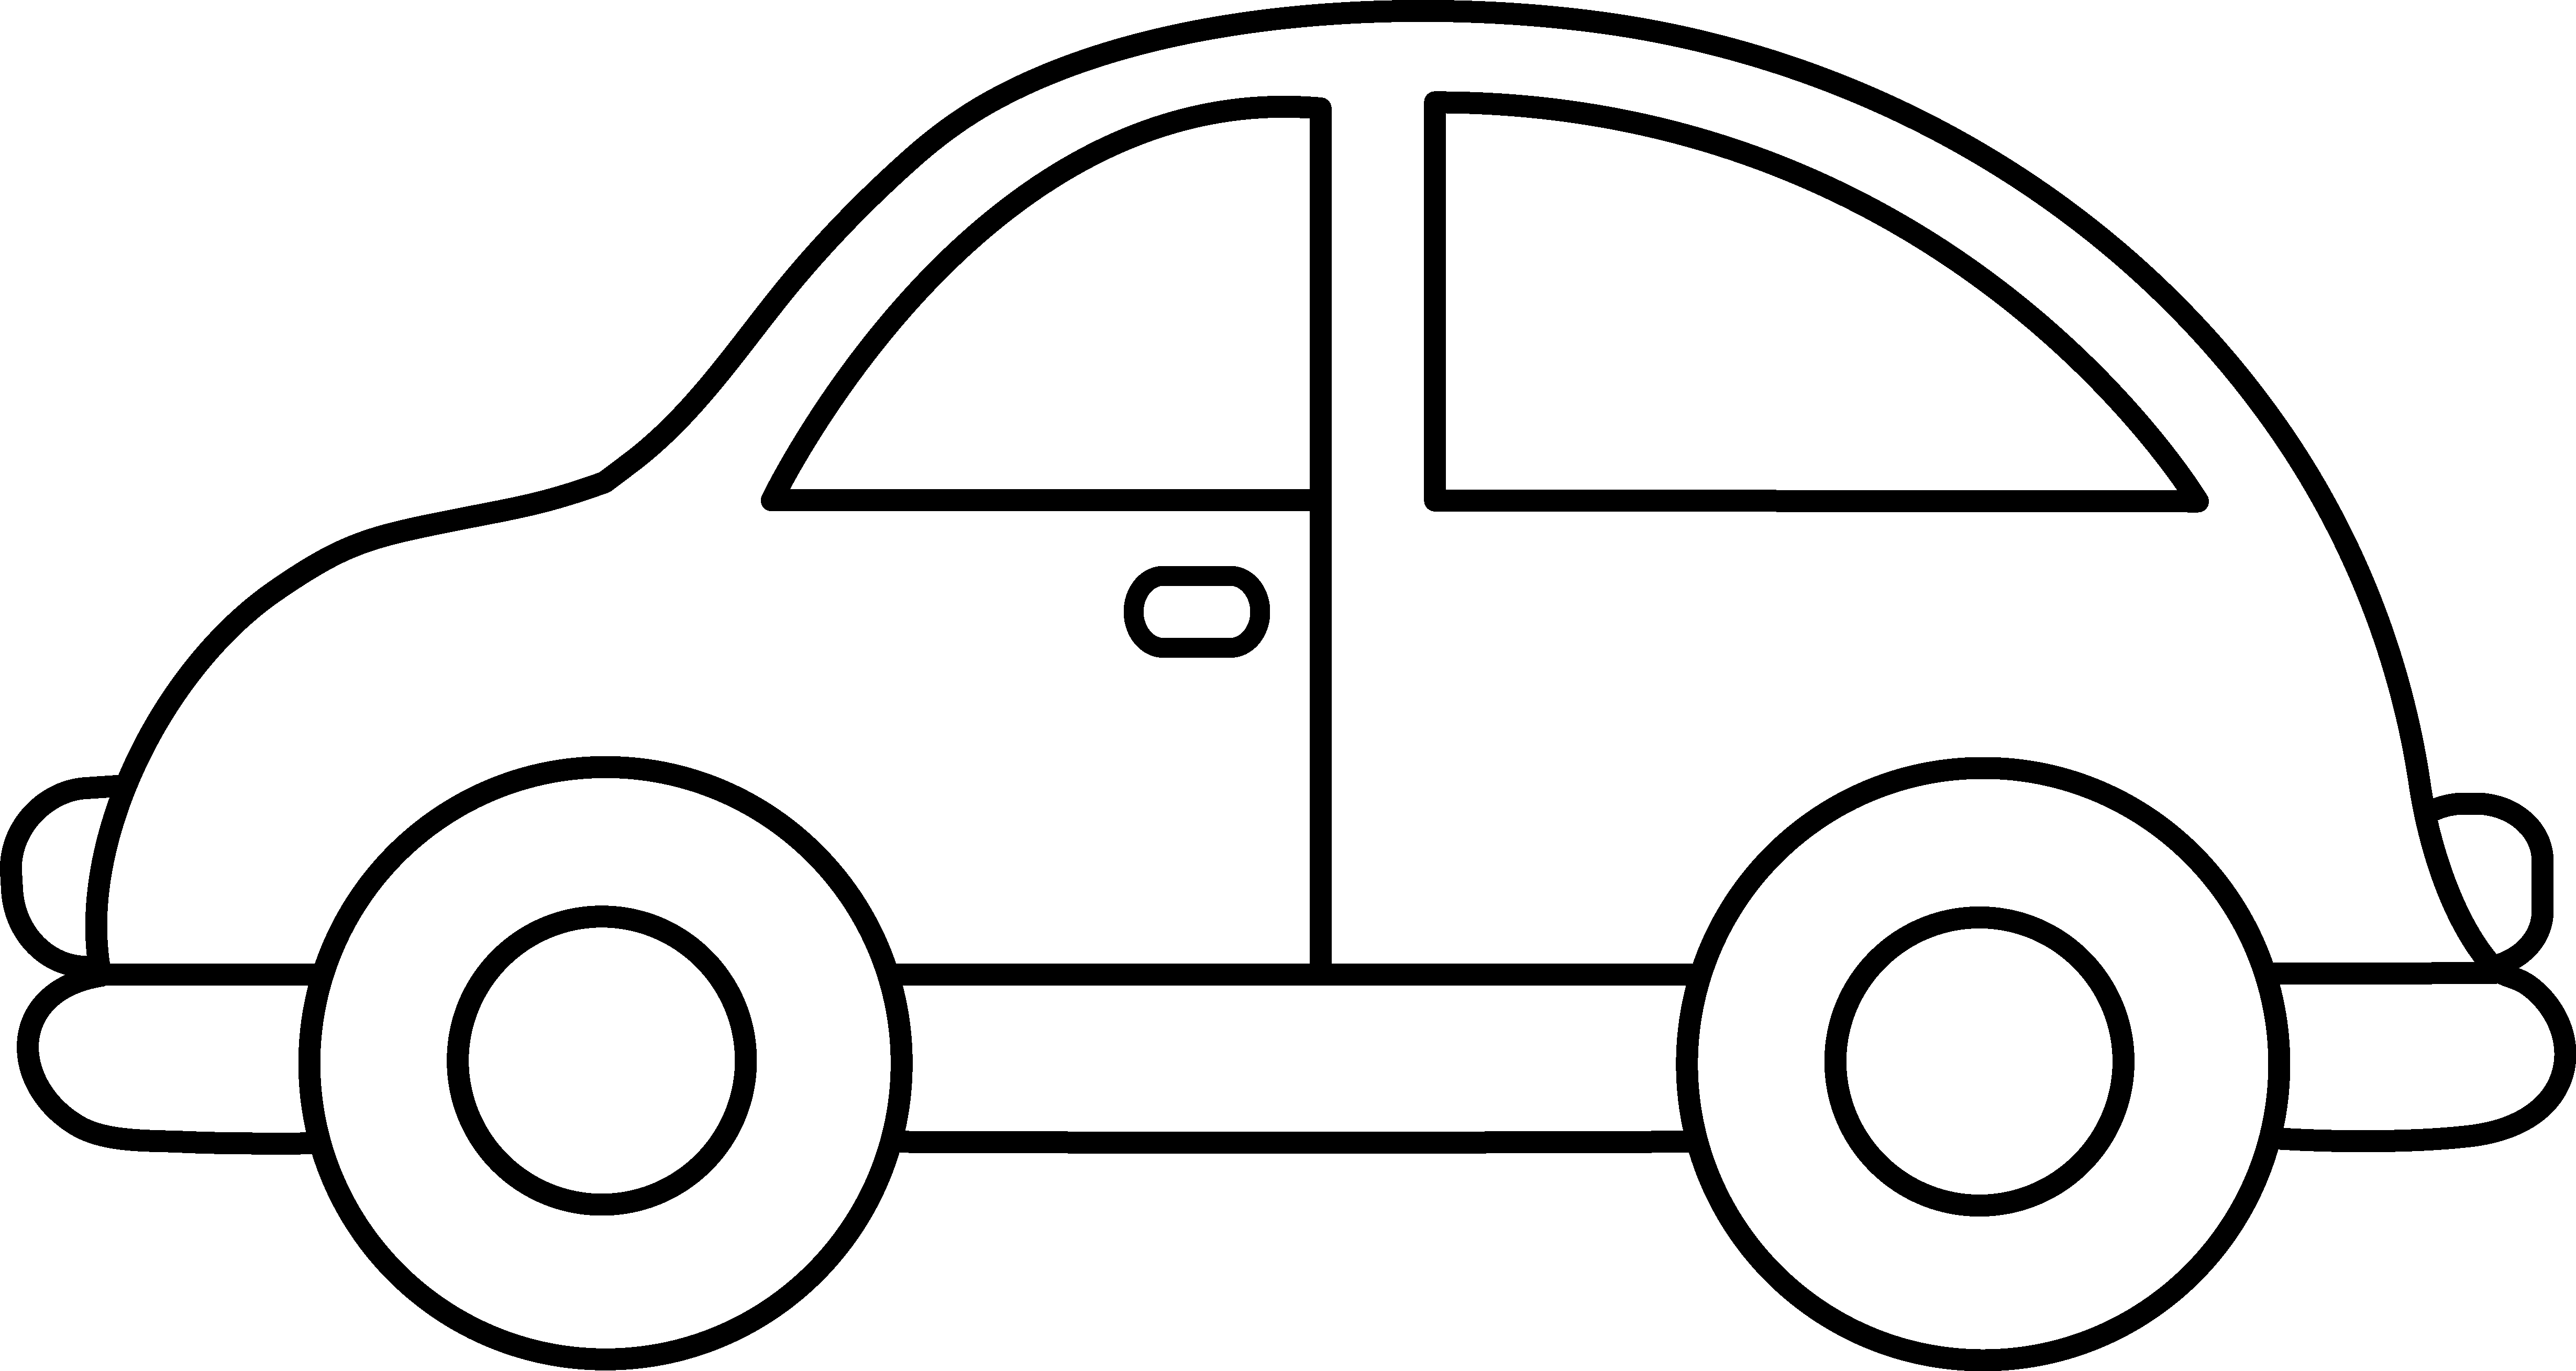 toy car clip art black and white back to school easy coloring pages cars coloring pages. Black Bedroom Furniture Sets. Home Design Ideas